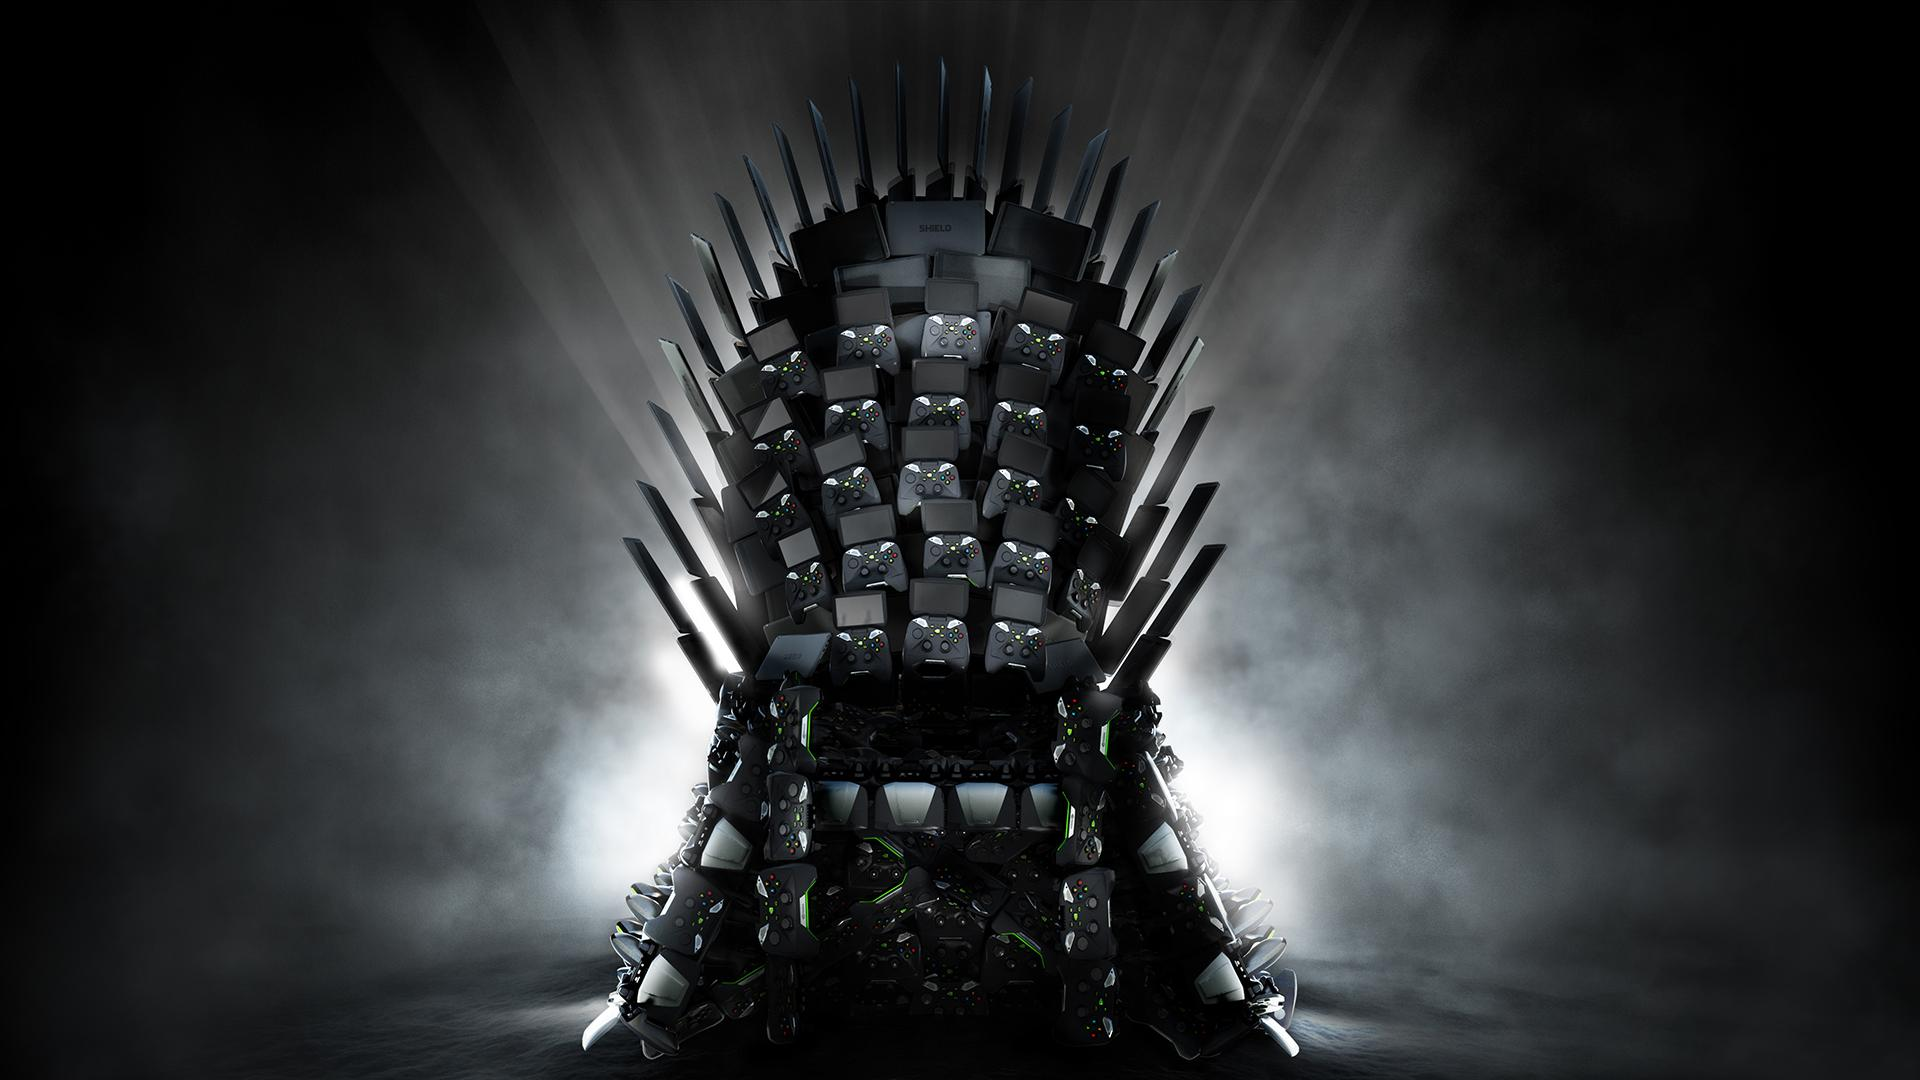 Free Download Iron Throne Wallpaper 60 Group Wallpapers 1920x1080